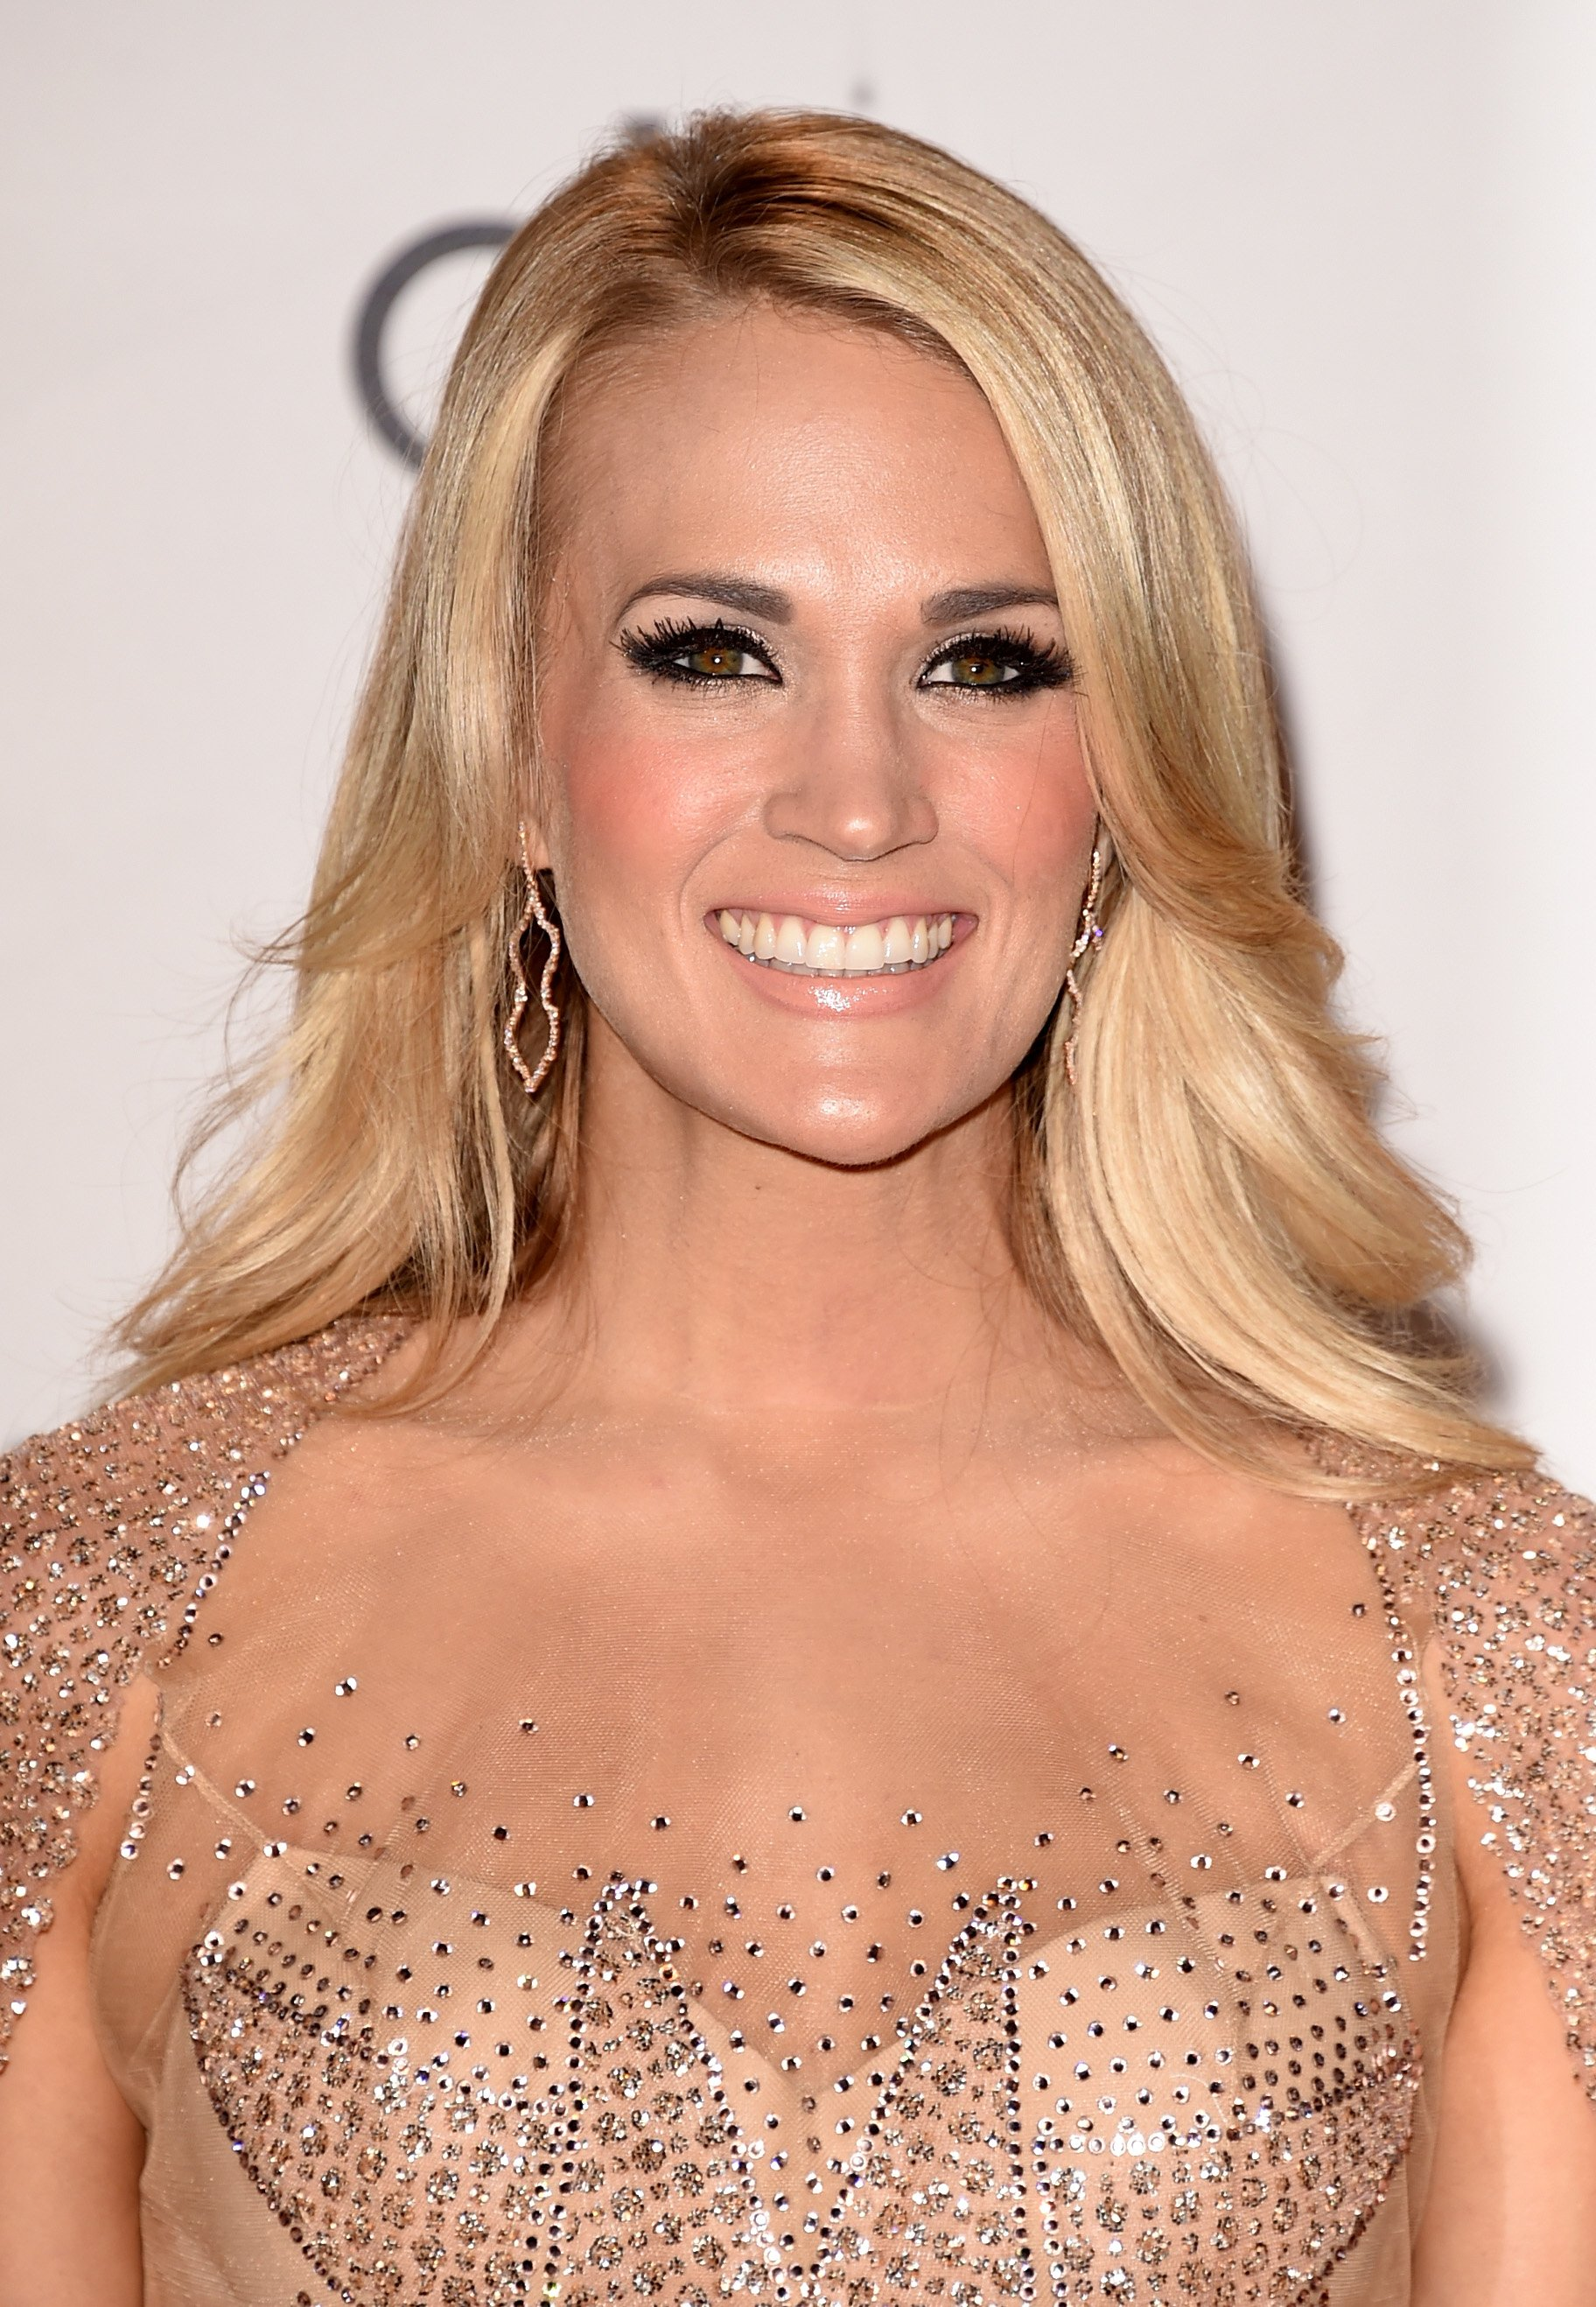 Carrie Underwood poses in the press room during the 2015 American Music Awards on November 22, 2015.   Source: Getty Images